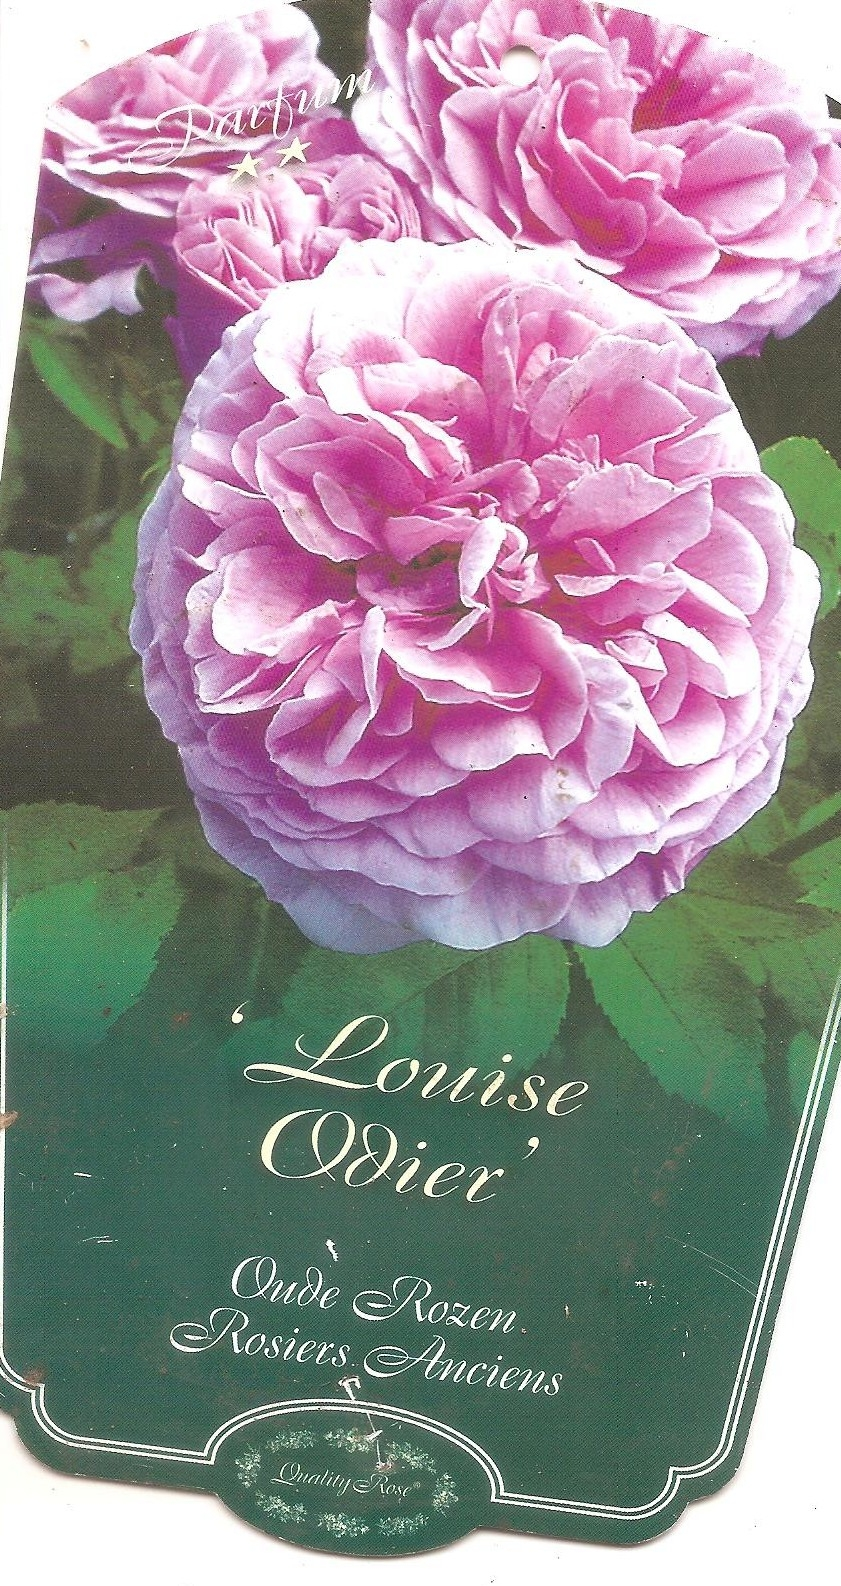 louise odier,rosier